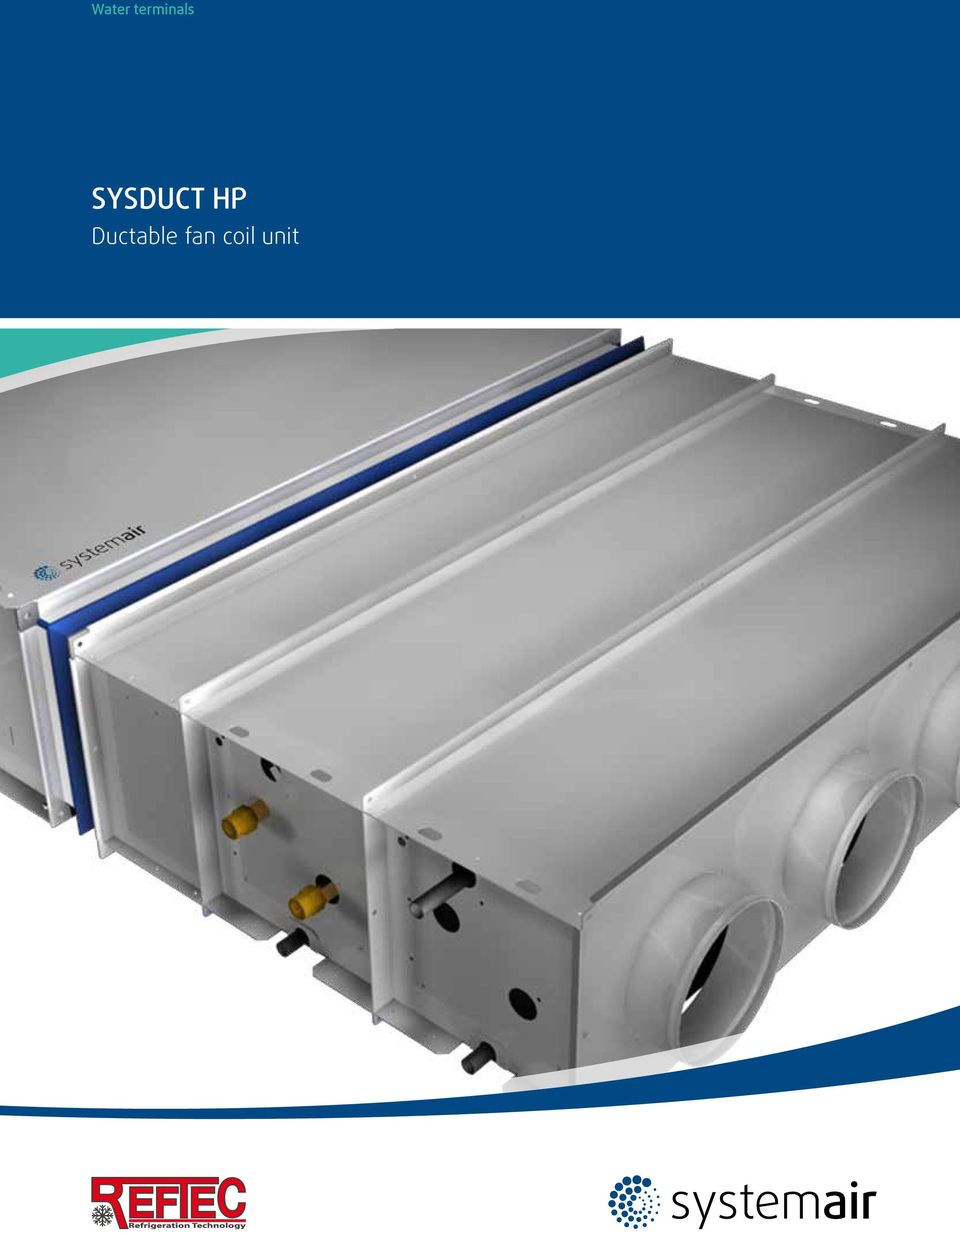 SYSDUCT HP